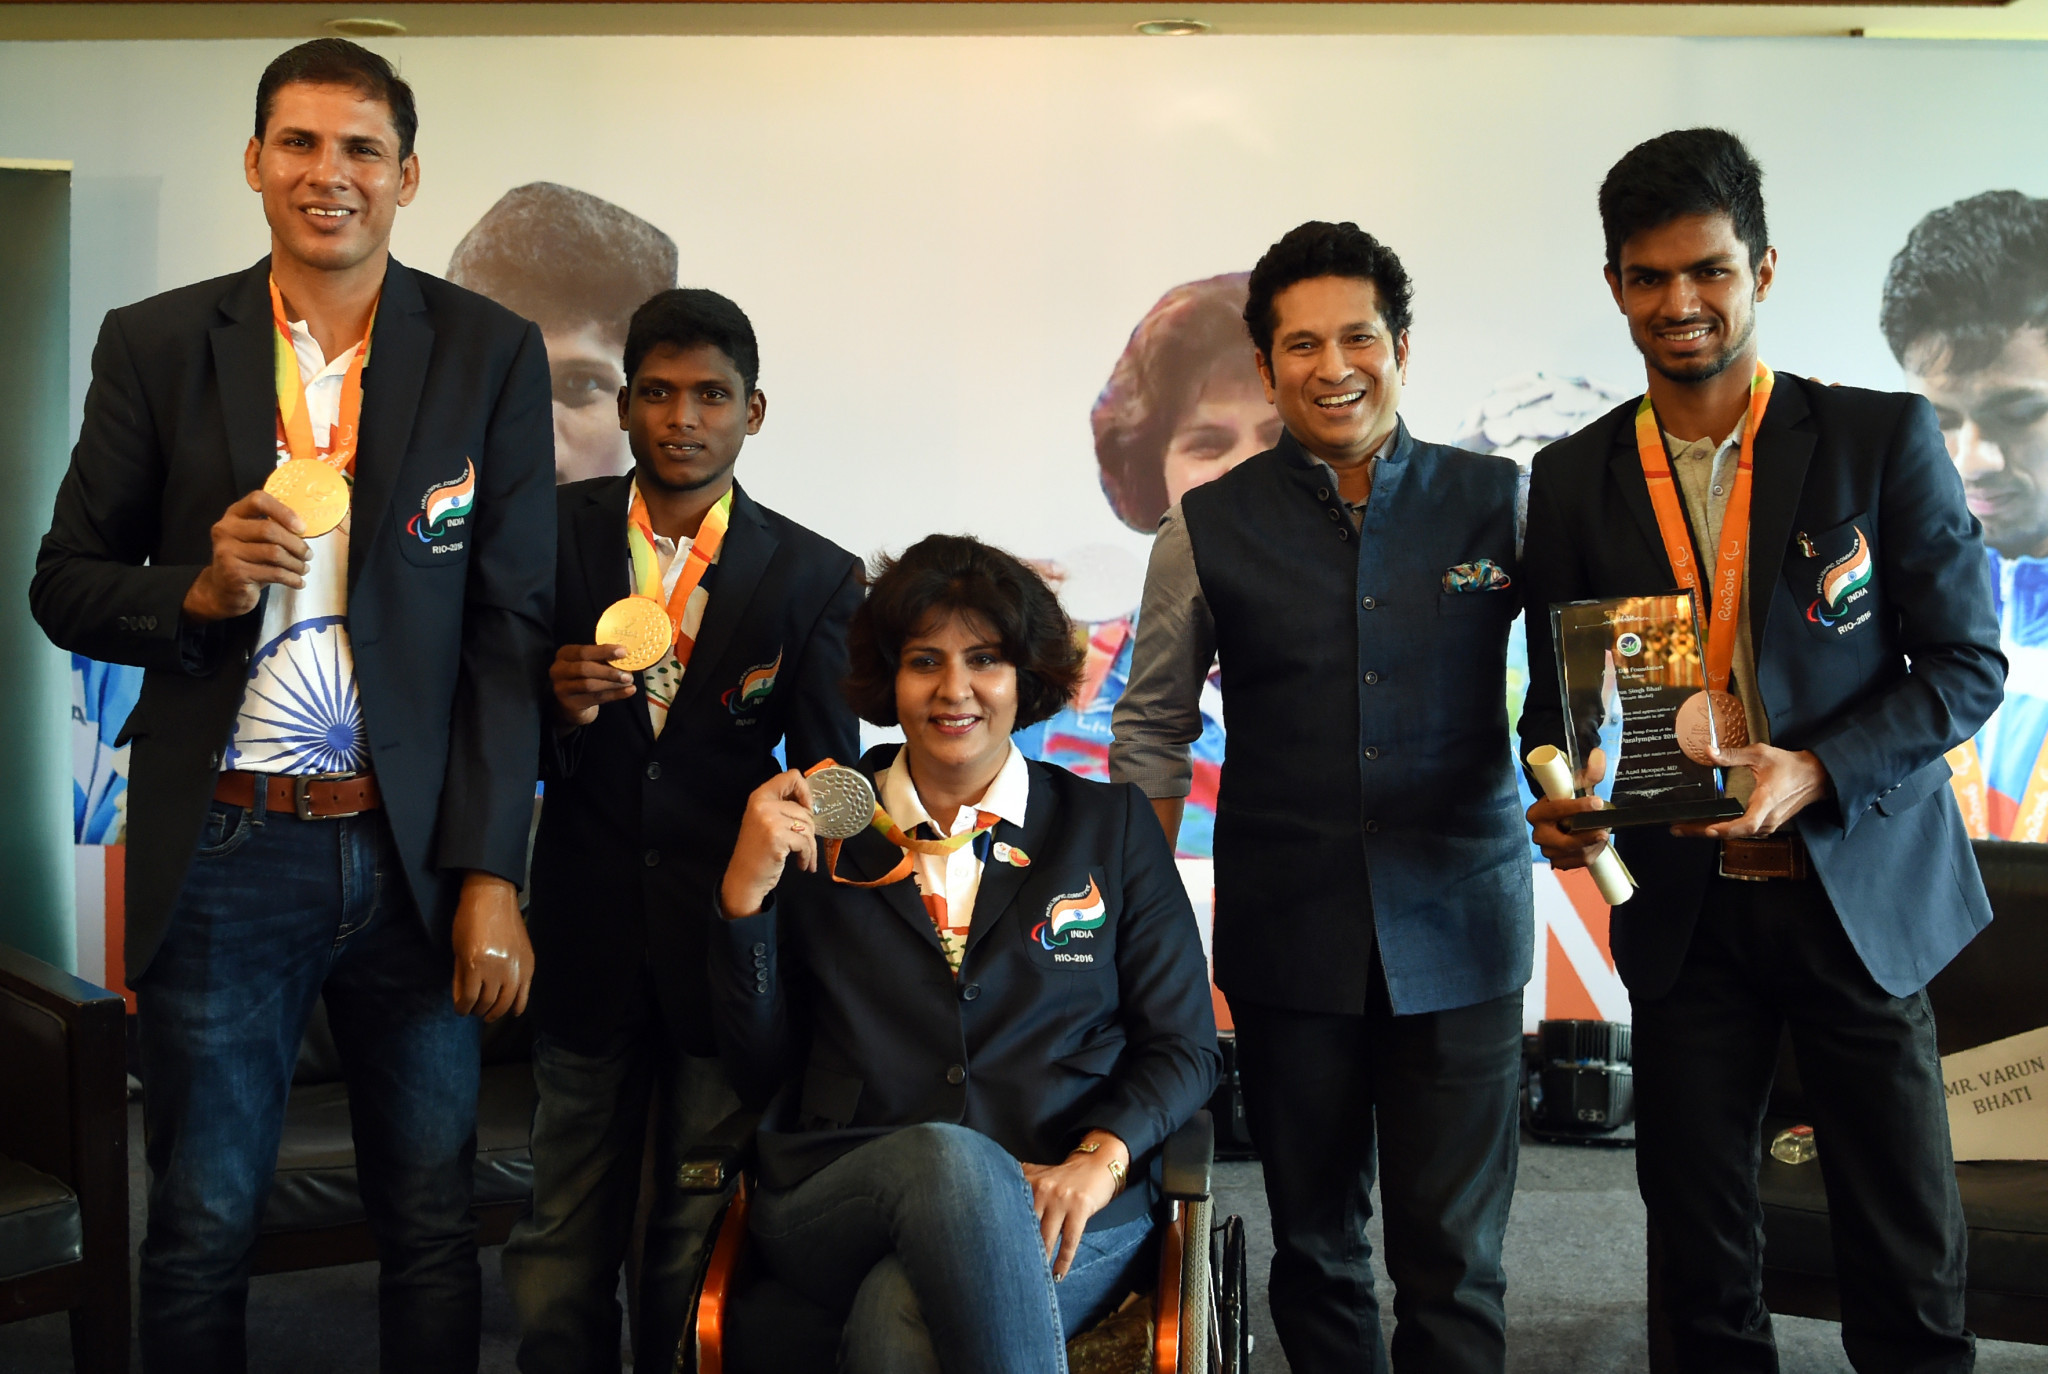 Deepa Malik became the first woman to win a Paralympic medal for India, at Rio 2016 ©Getty Images